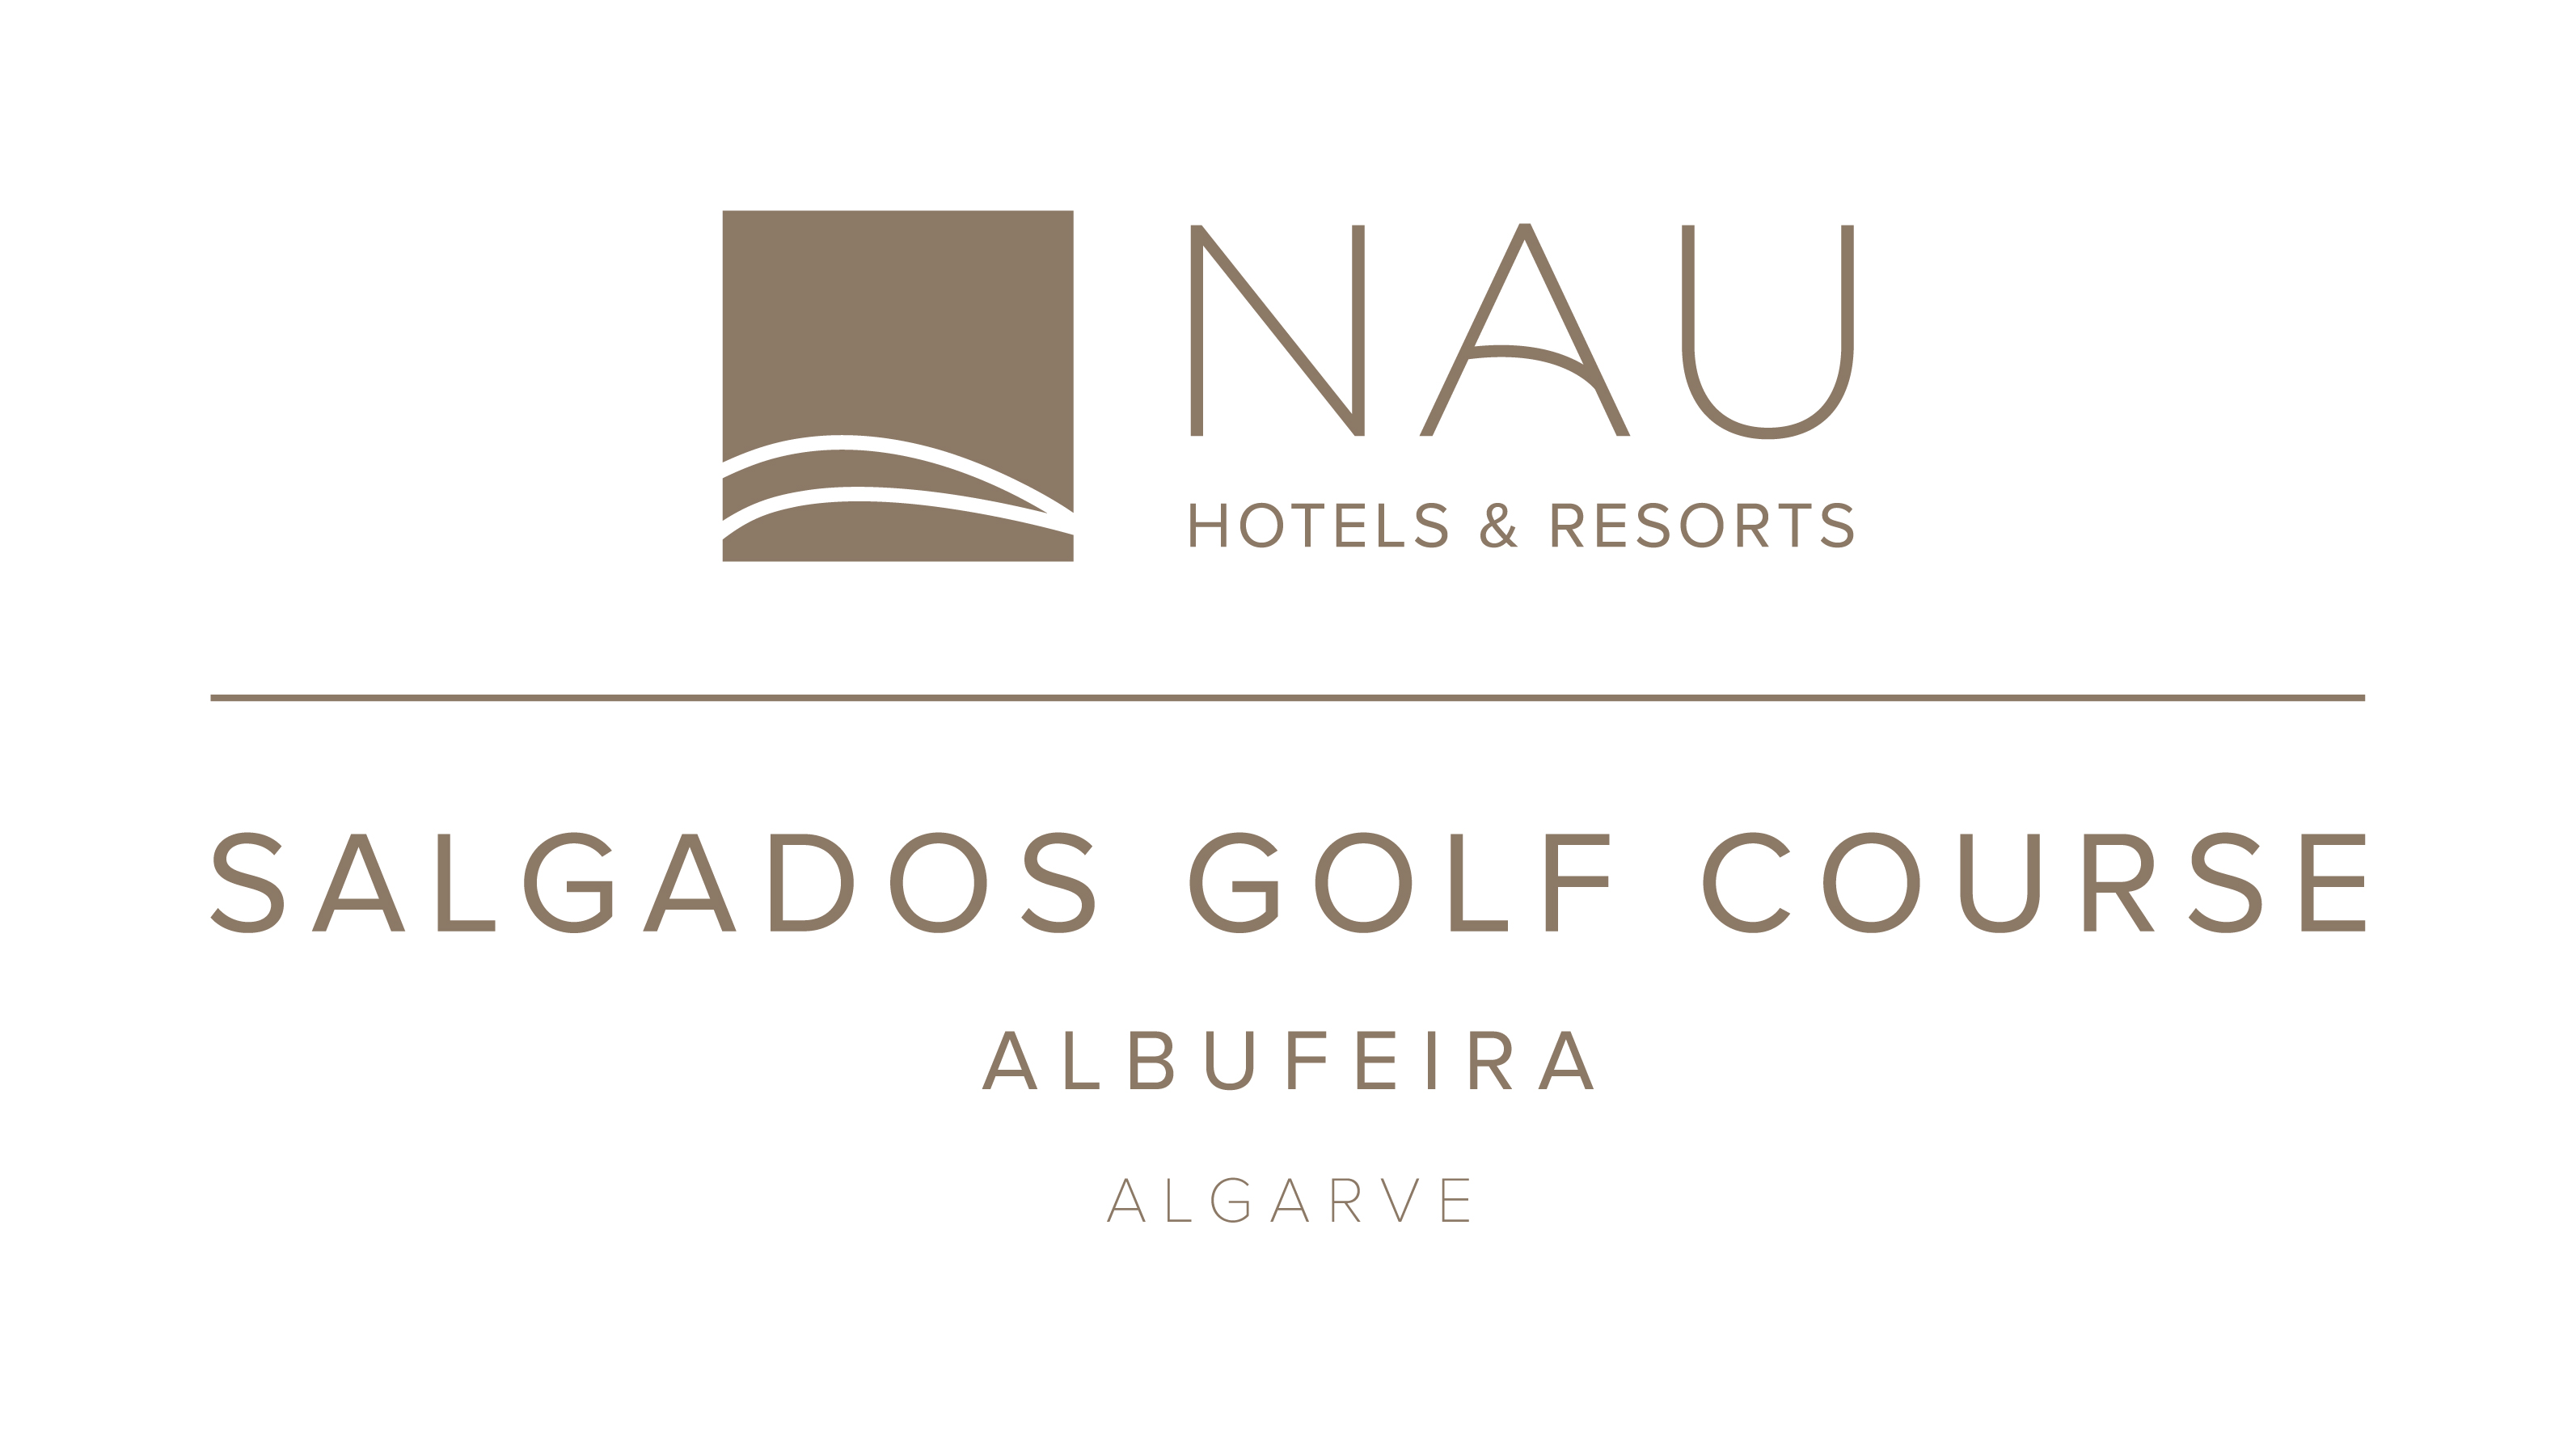 logo_salgados-golf-course_RGB